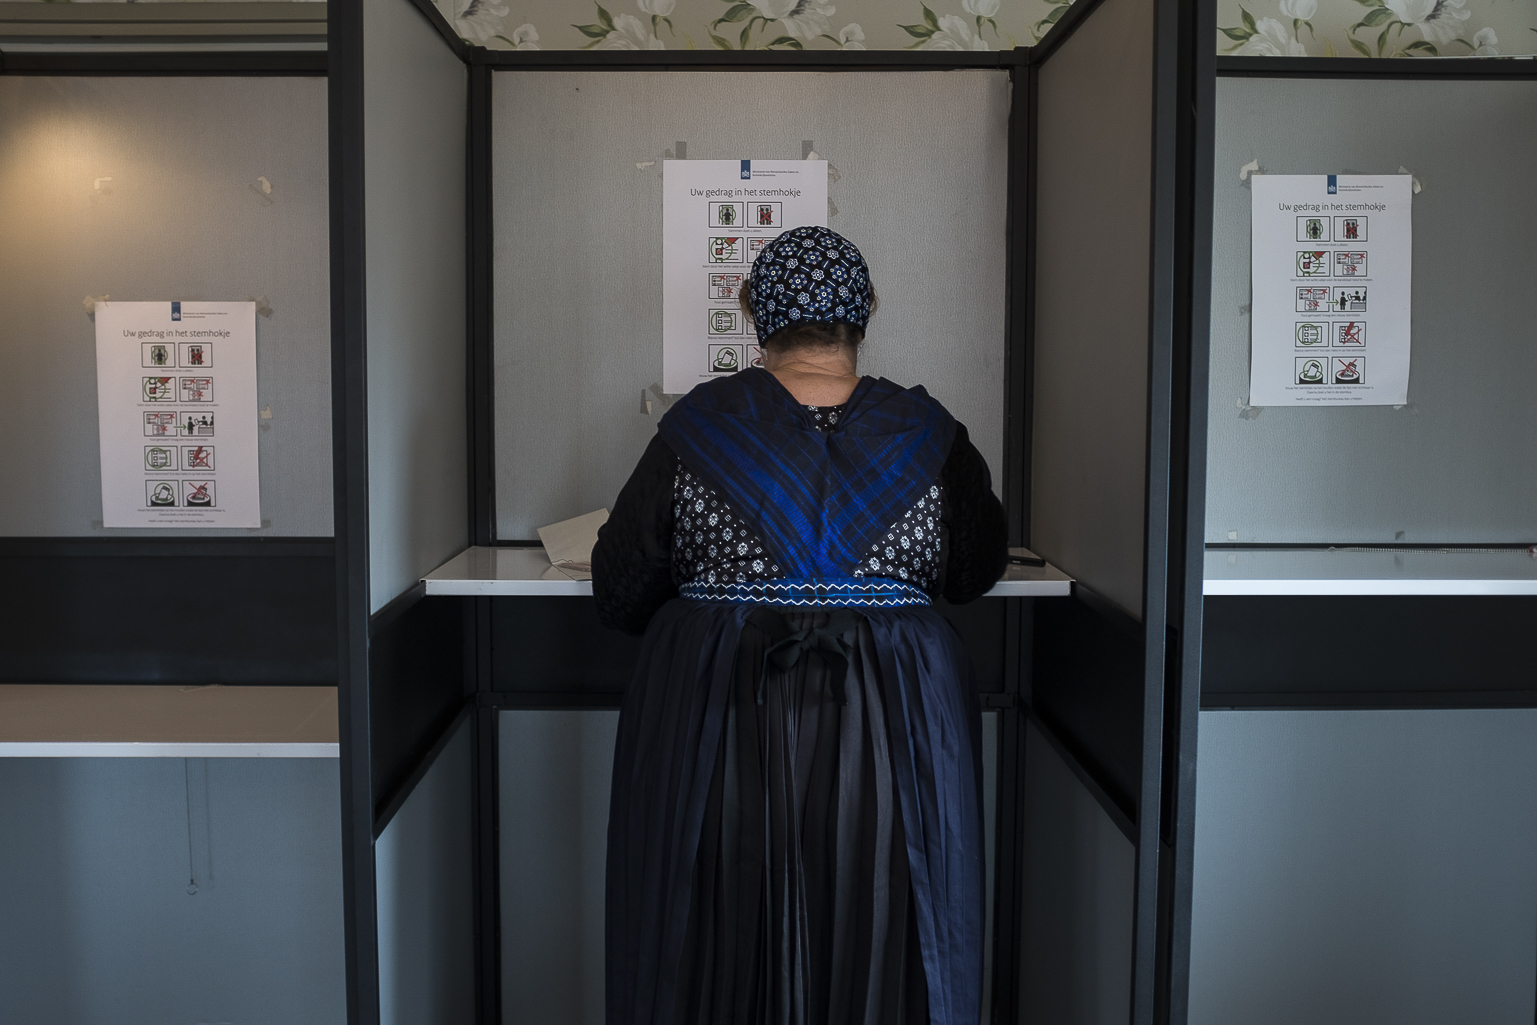 An elderly woman dressed in the traditional clothing of the town casts her ballot for the Dutch general elections at a polling station set up in a cafe in Staphorst, Netherlands, Wednesday, March 15, 2017.